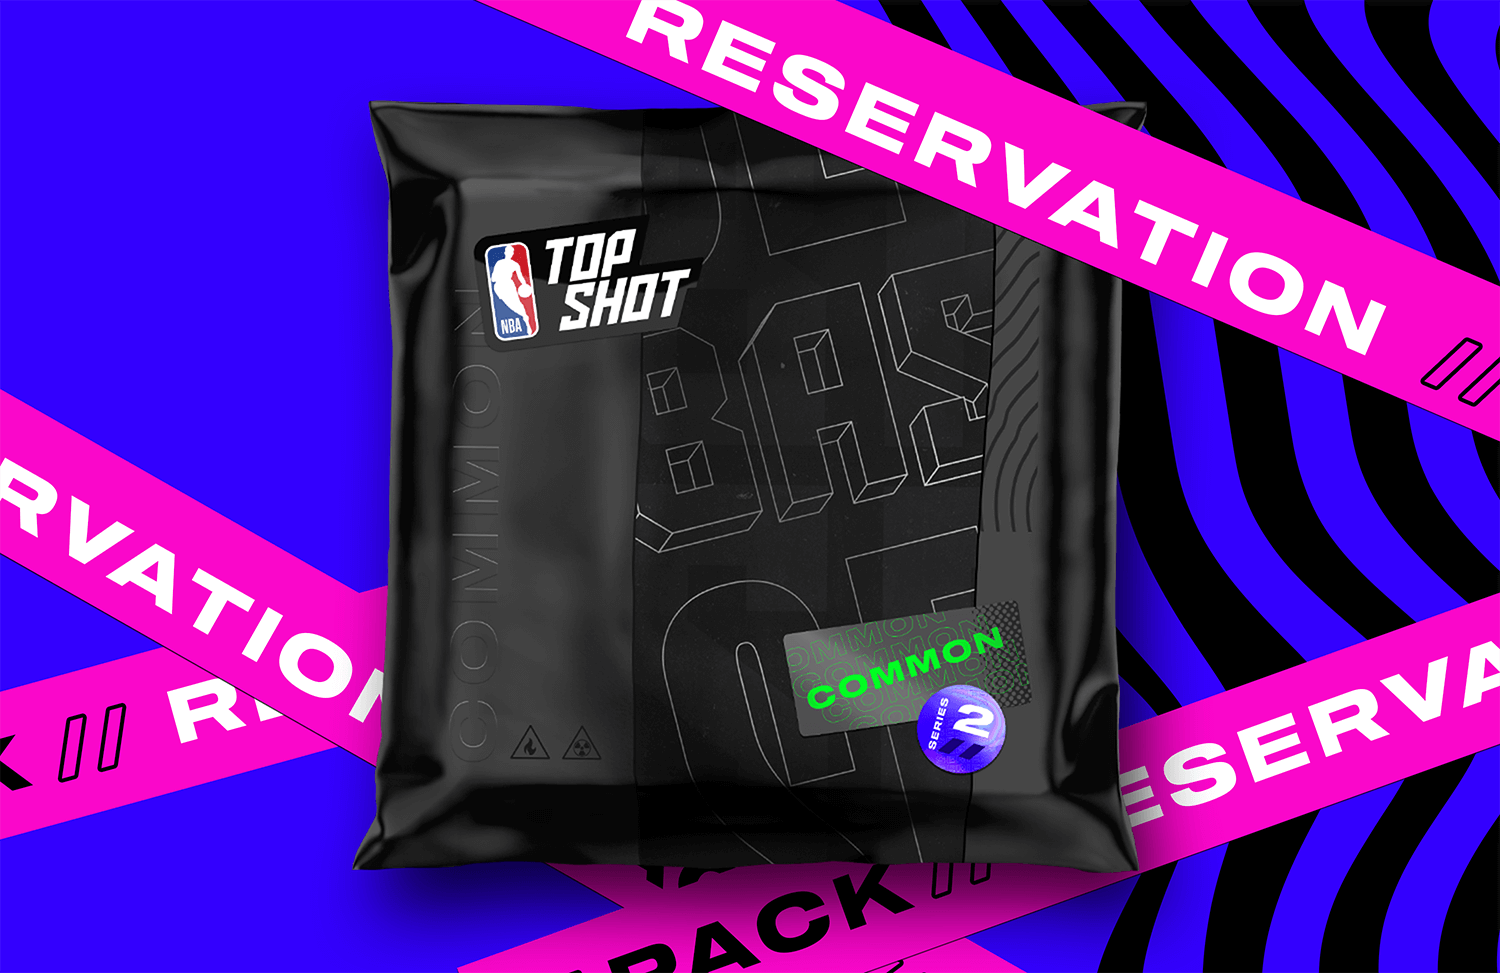 Reserve your next NBA Top Shot pack today. Here's how.